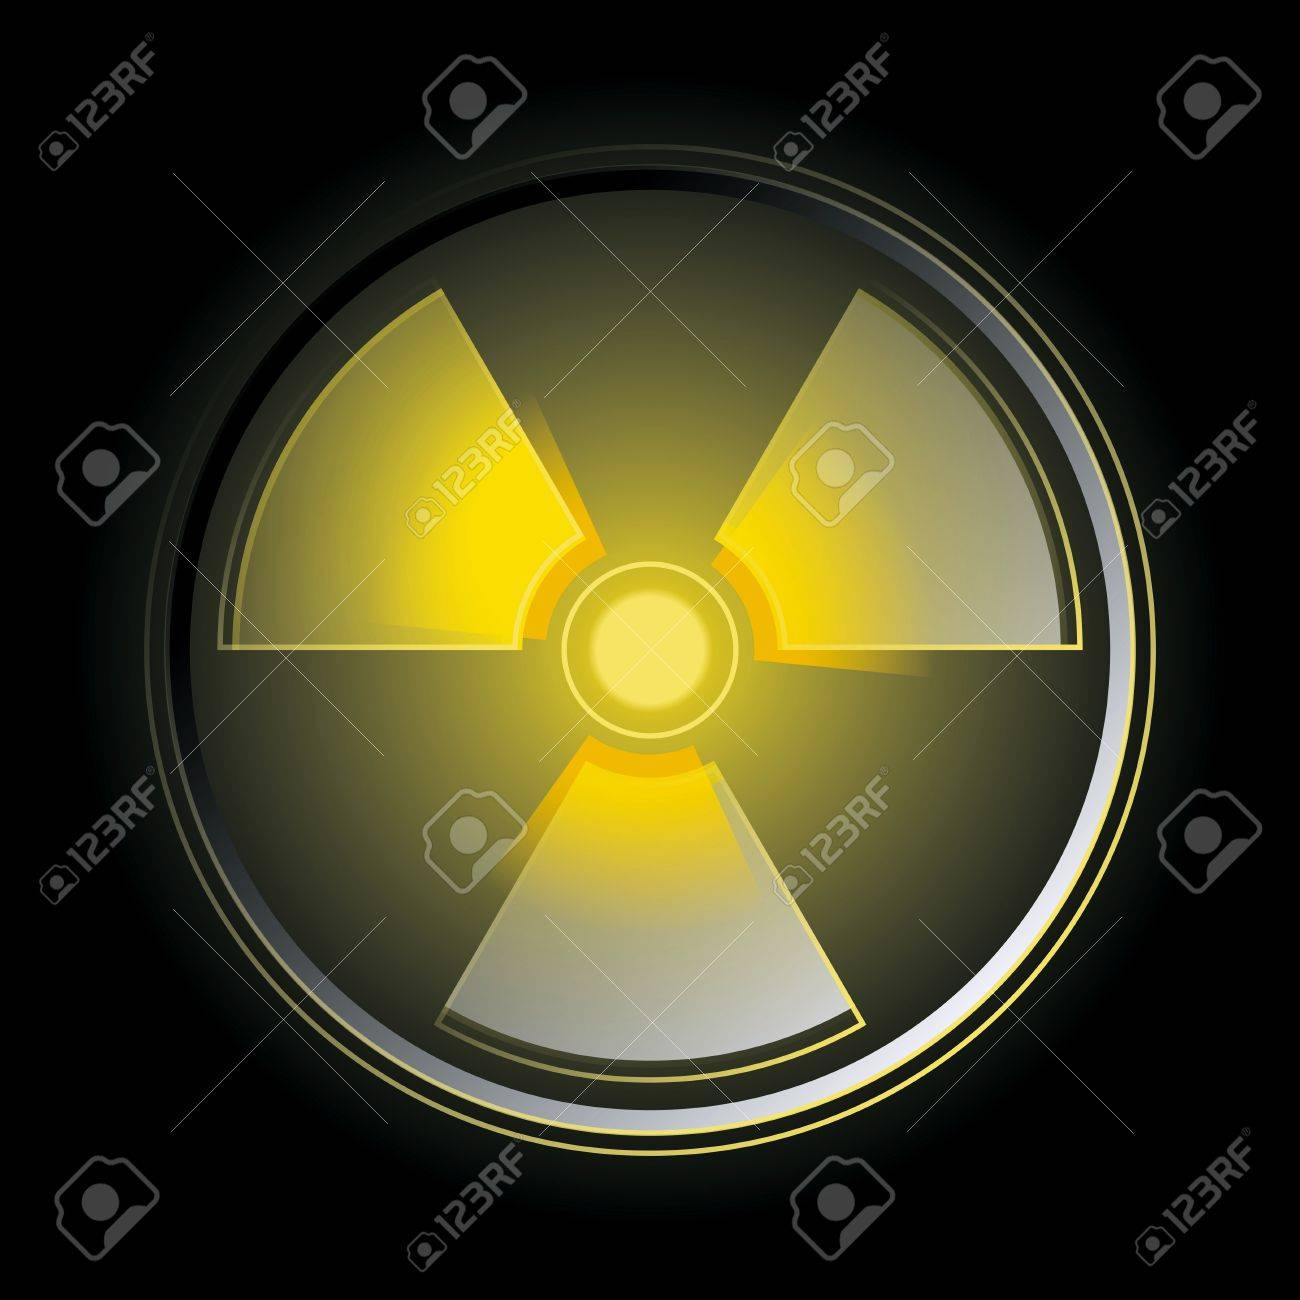 Glowing in the dark radioactive symbol. Vector illustration Stock Vector - 9327729